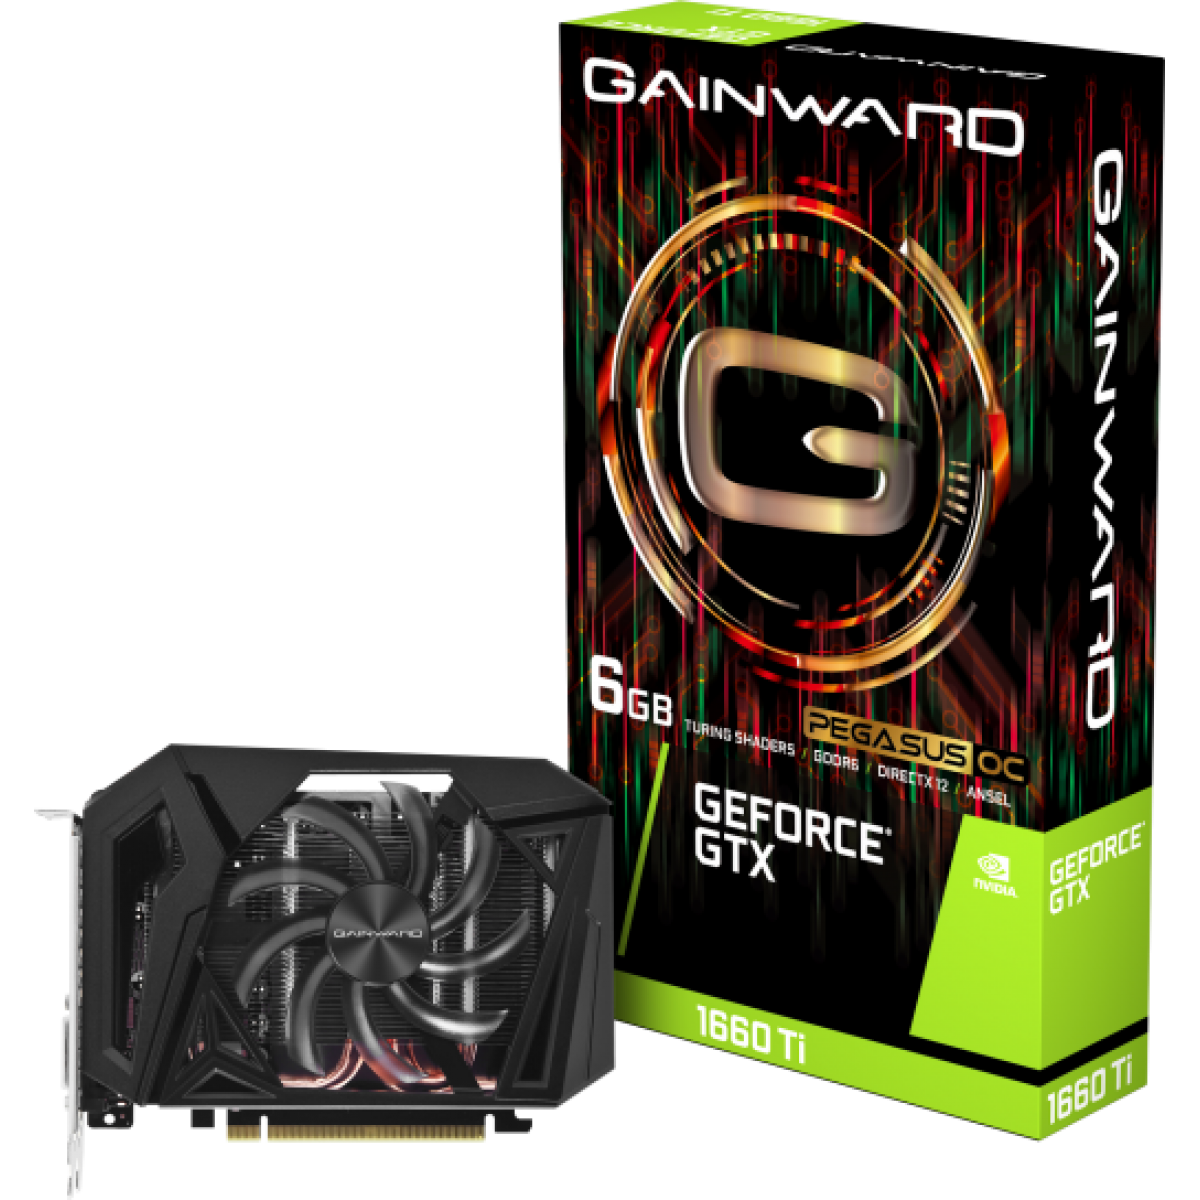 Placa de Vídeo Gainward GeForce GTX 1660 Ti Pegasus OC, 6GB GDDR6, 192Bit